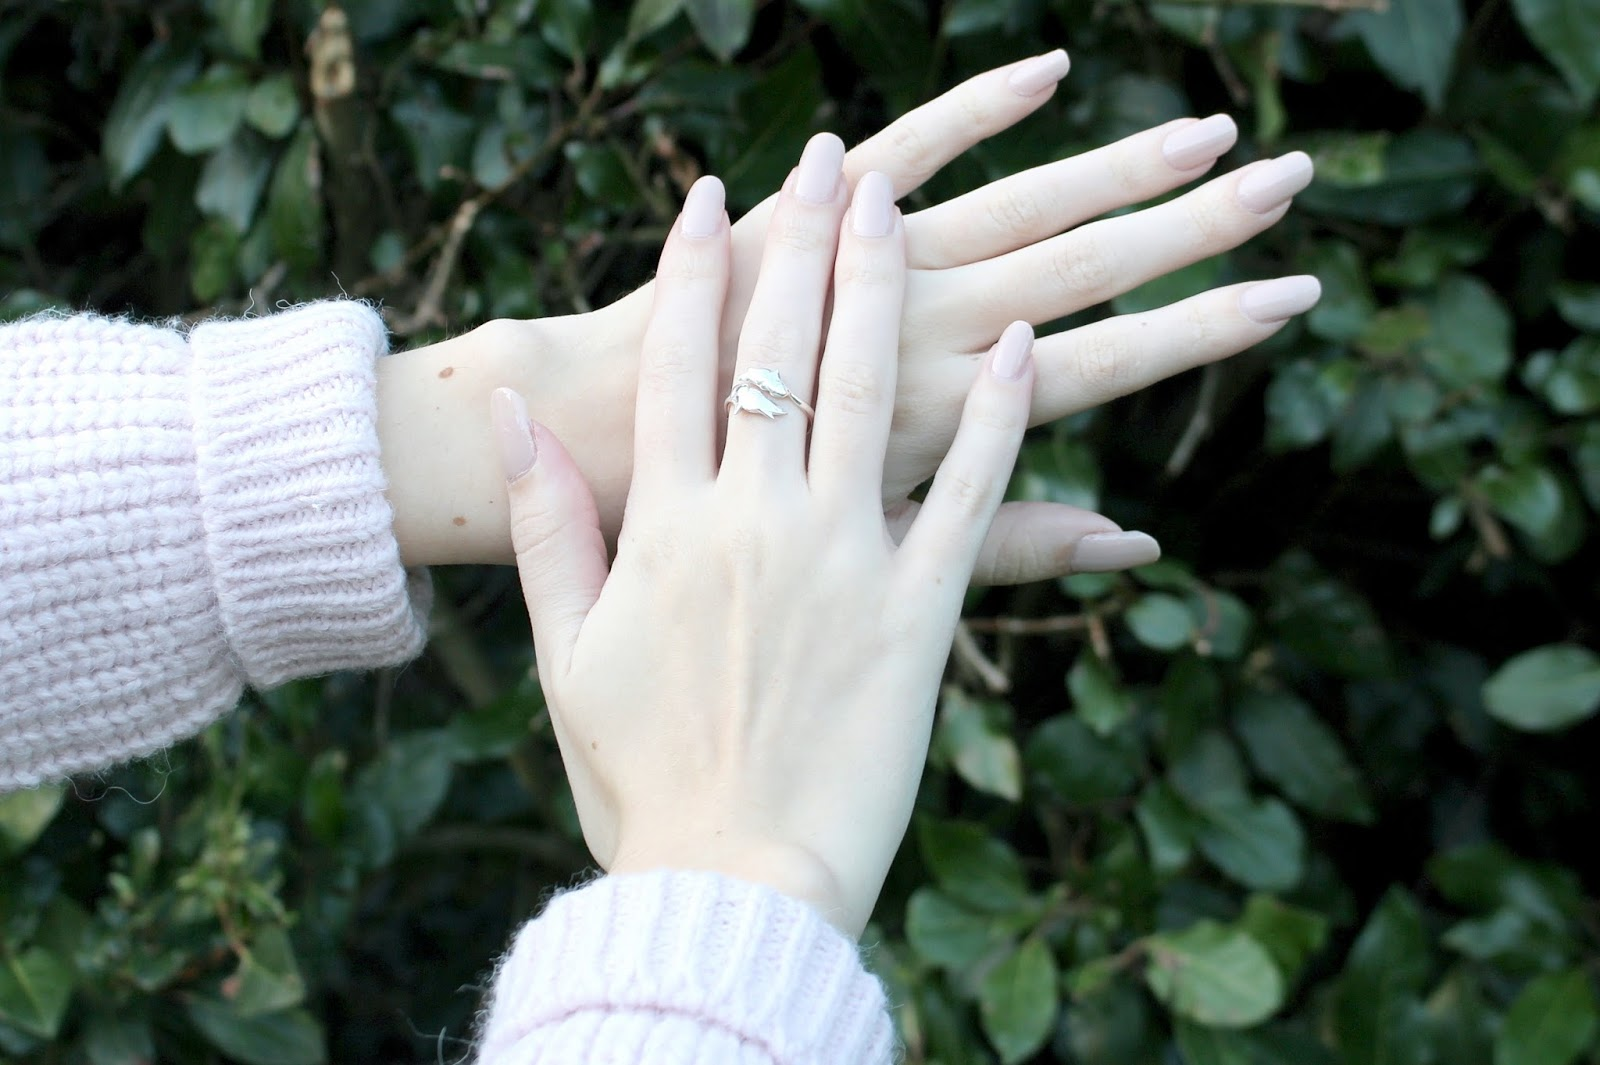 Pale hands with nude nails